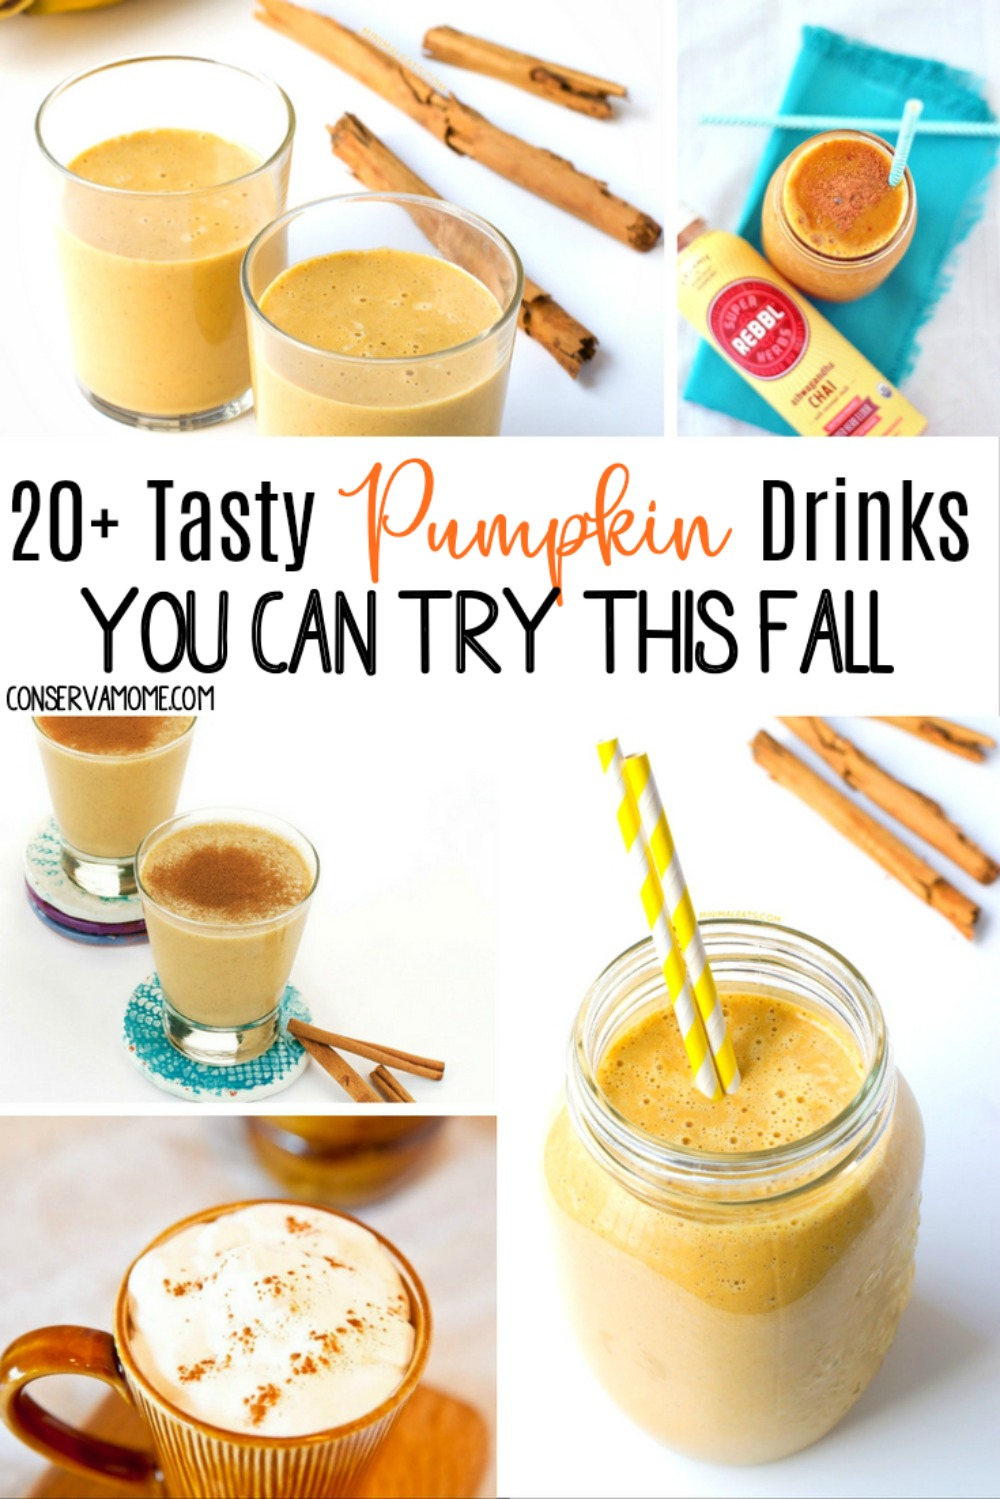 20+ Tasty Pumpkin Drinks you can try this fall